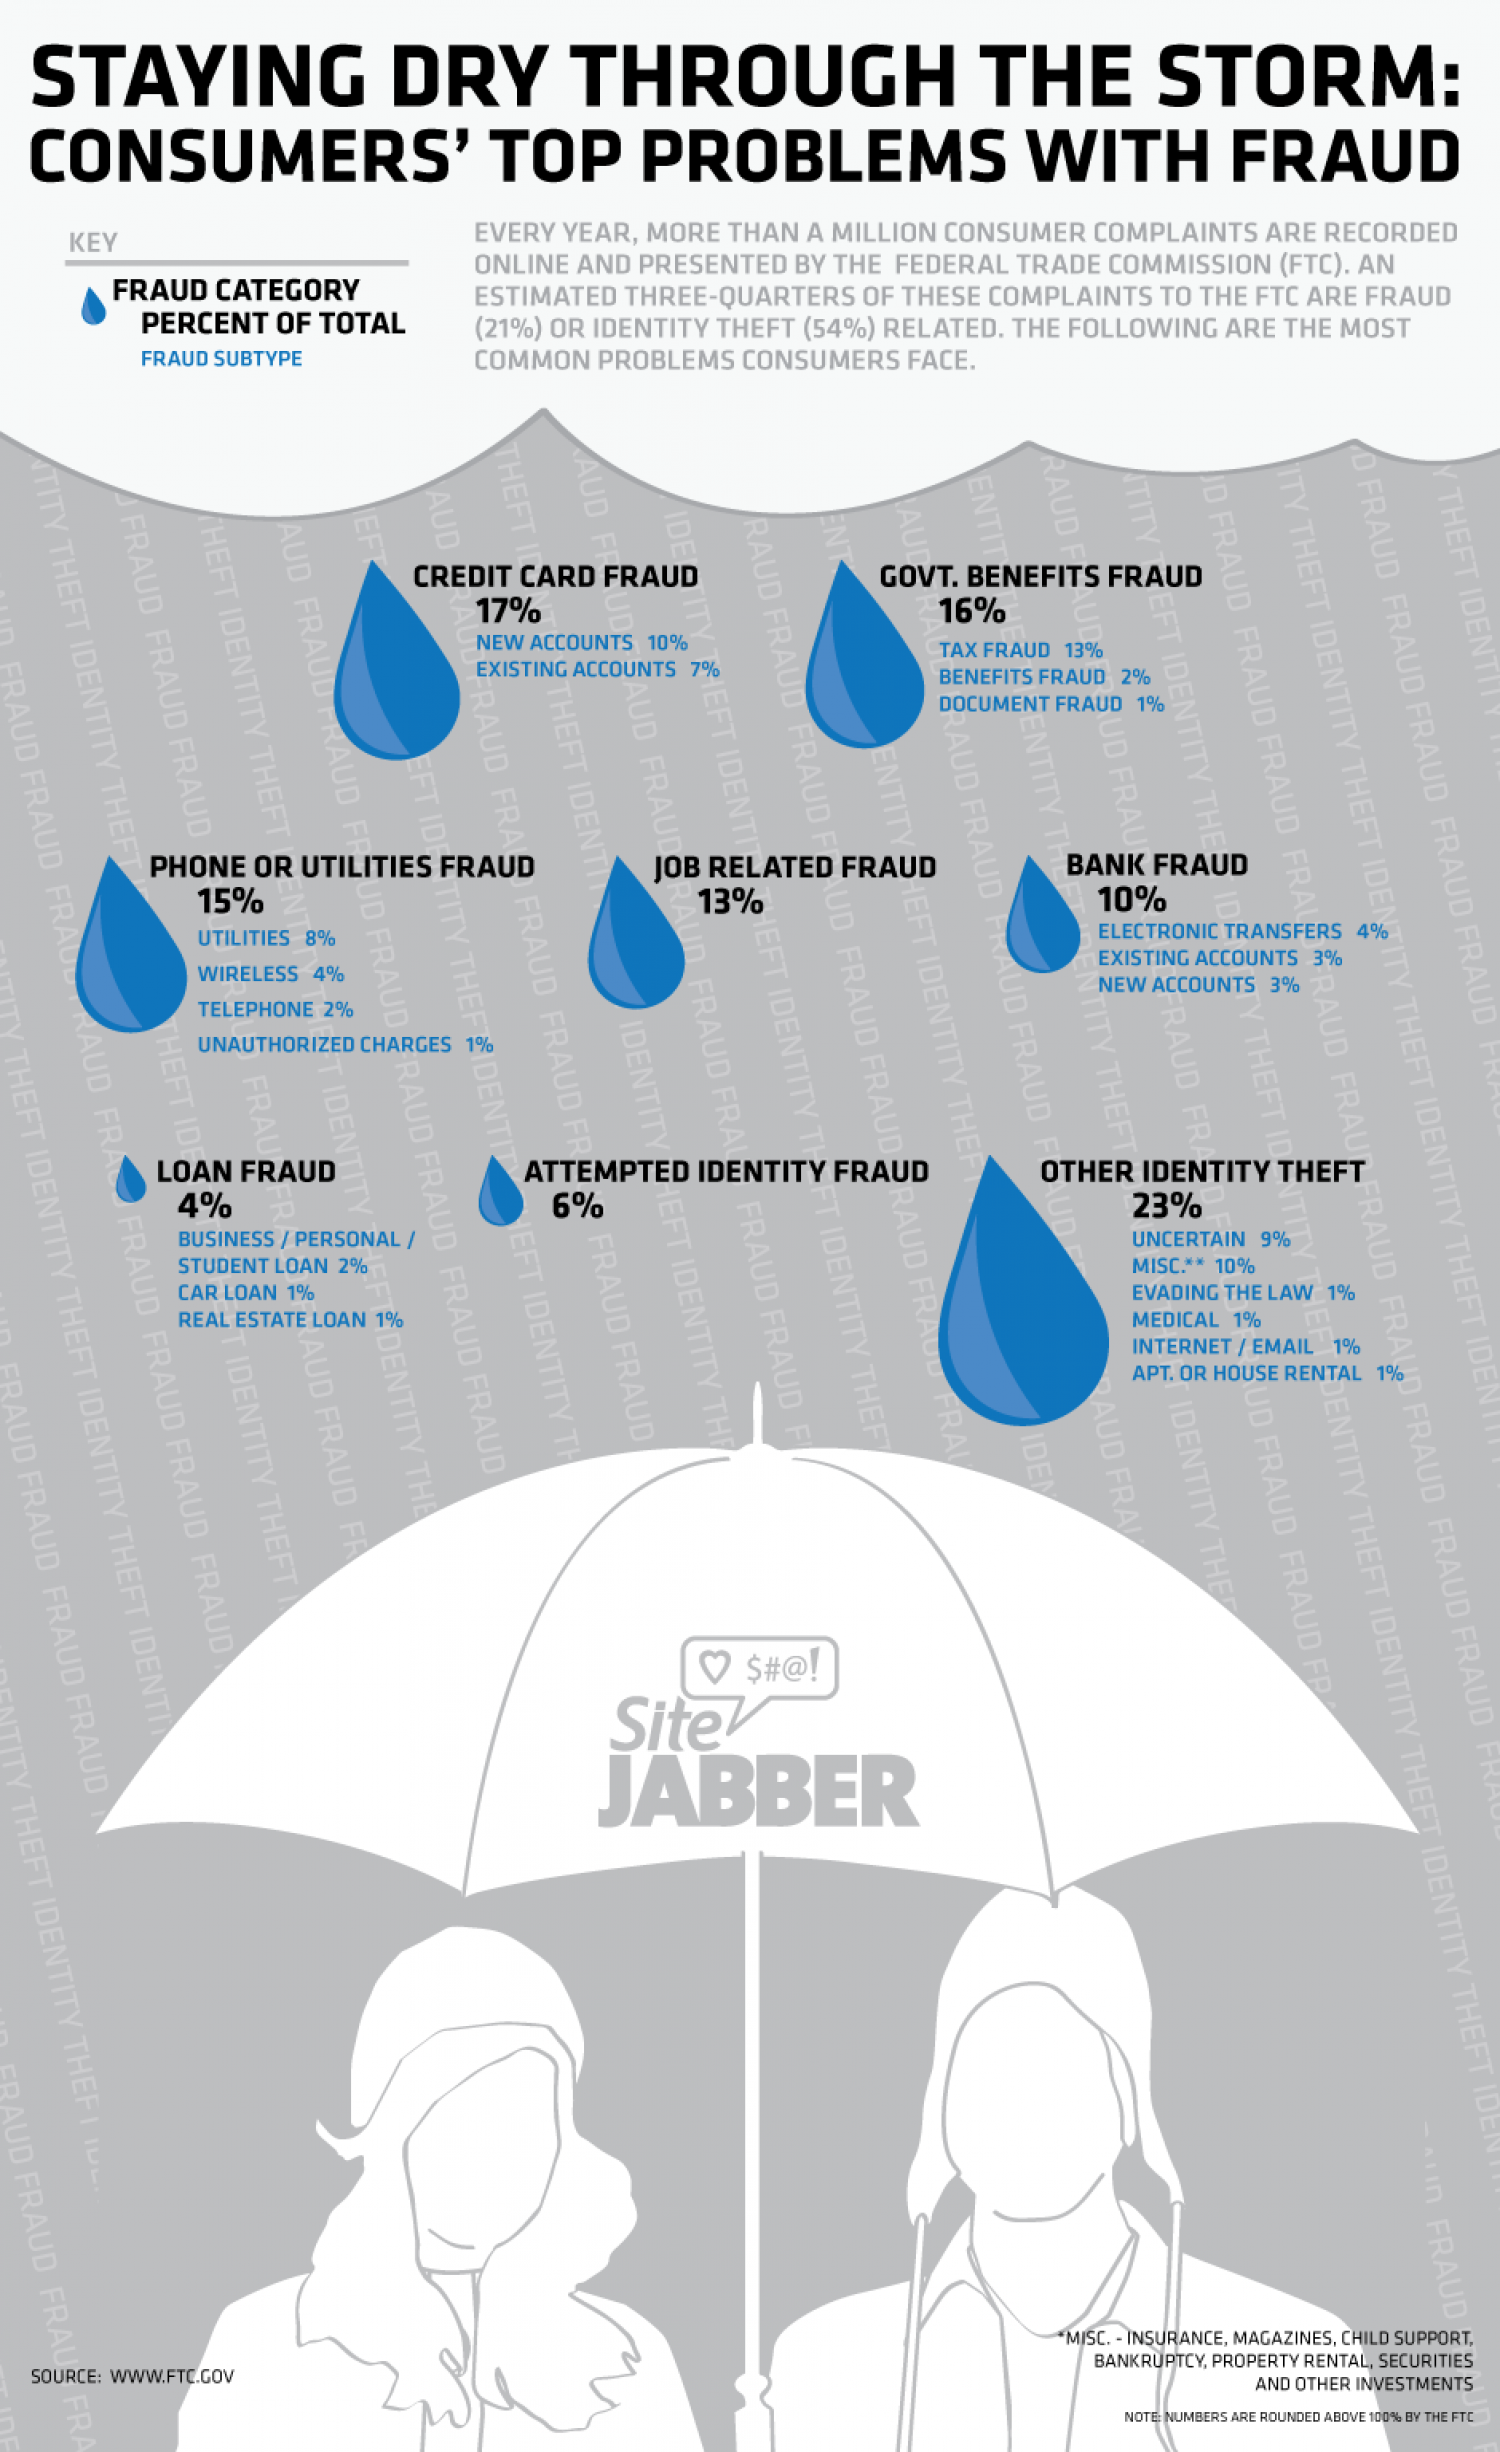 Staying dry through the storm: Consumers' top problems with fraud Infographic